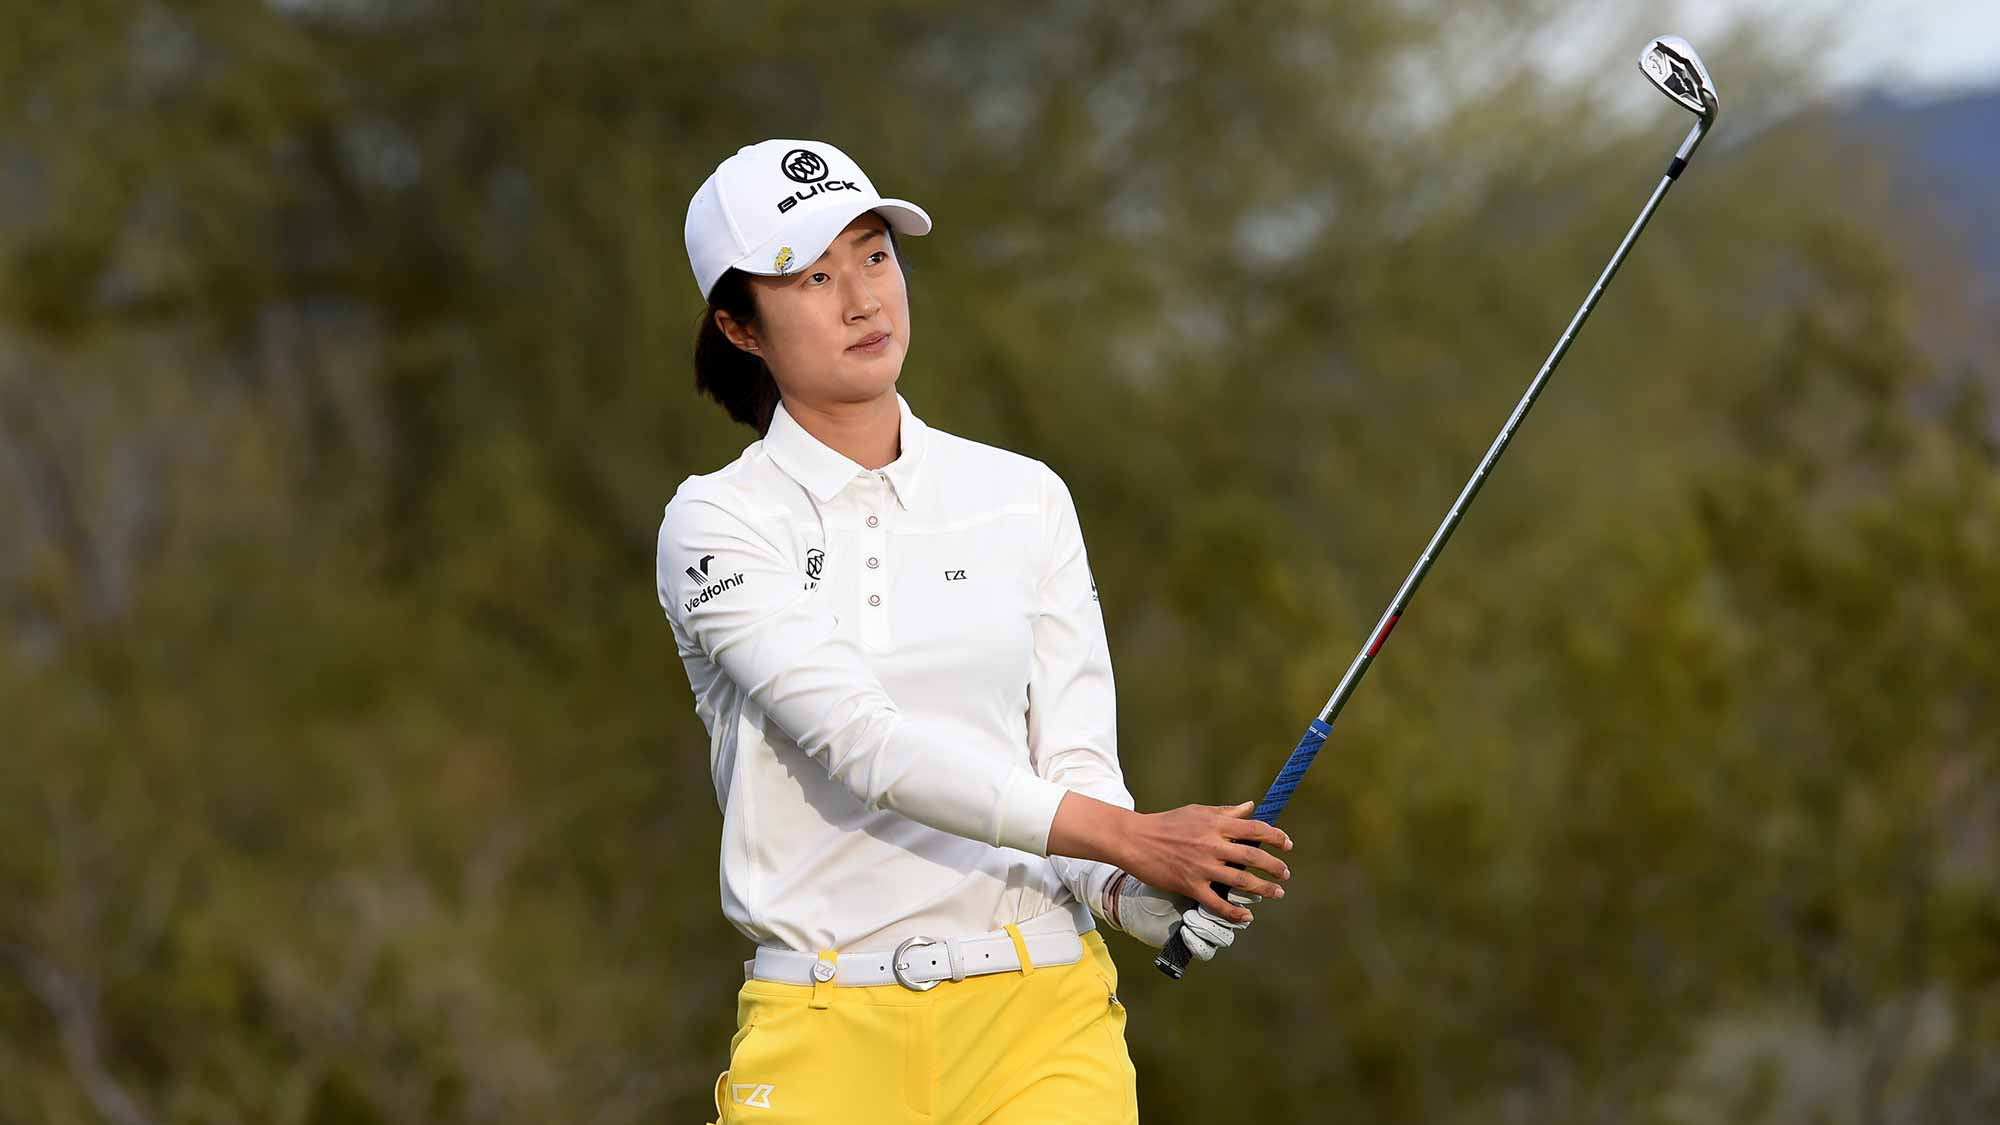 Yu Liu of China hits her tee shot on the 17th hole during the third round of the Bank Of Hope Founders Cup at the Wildfire Golf Club on March 23, 2019 in Phoenix, Arizona